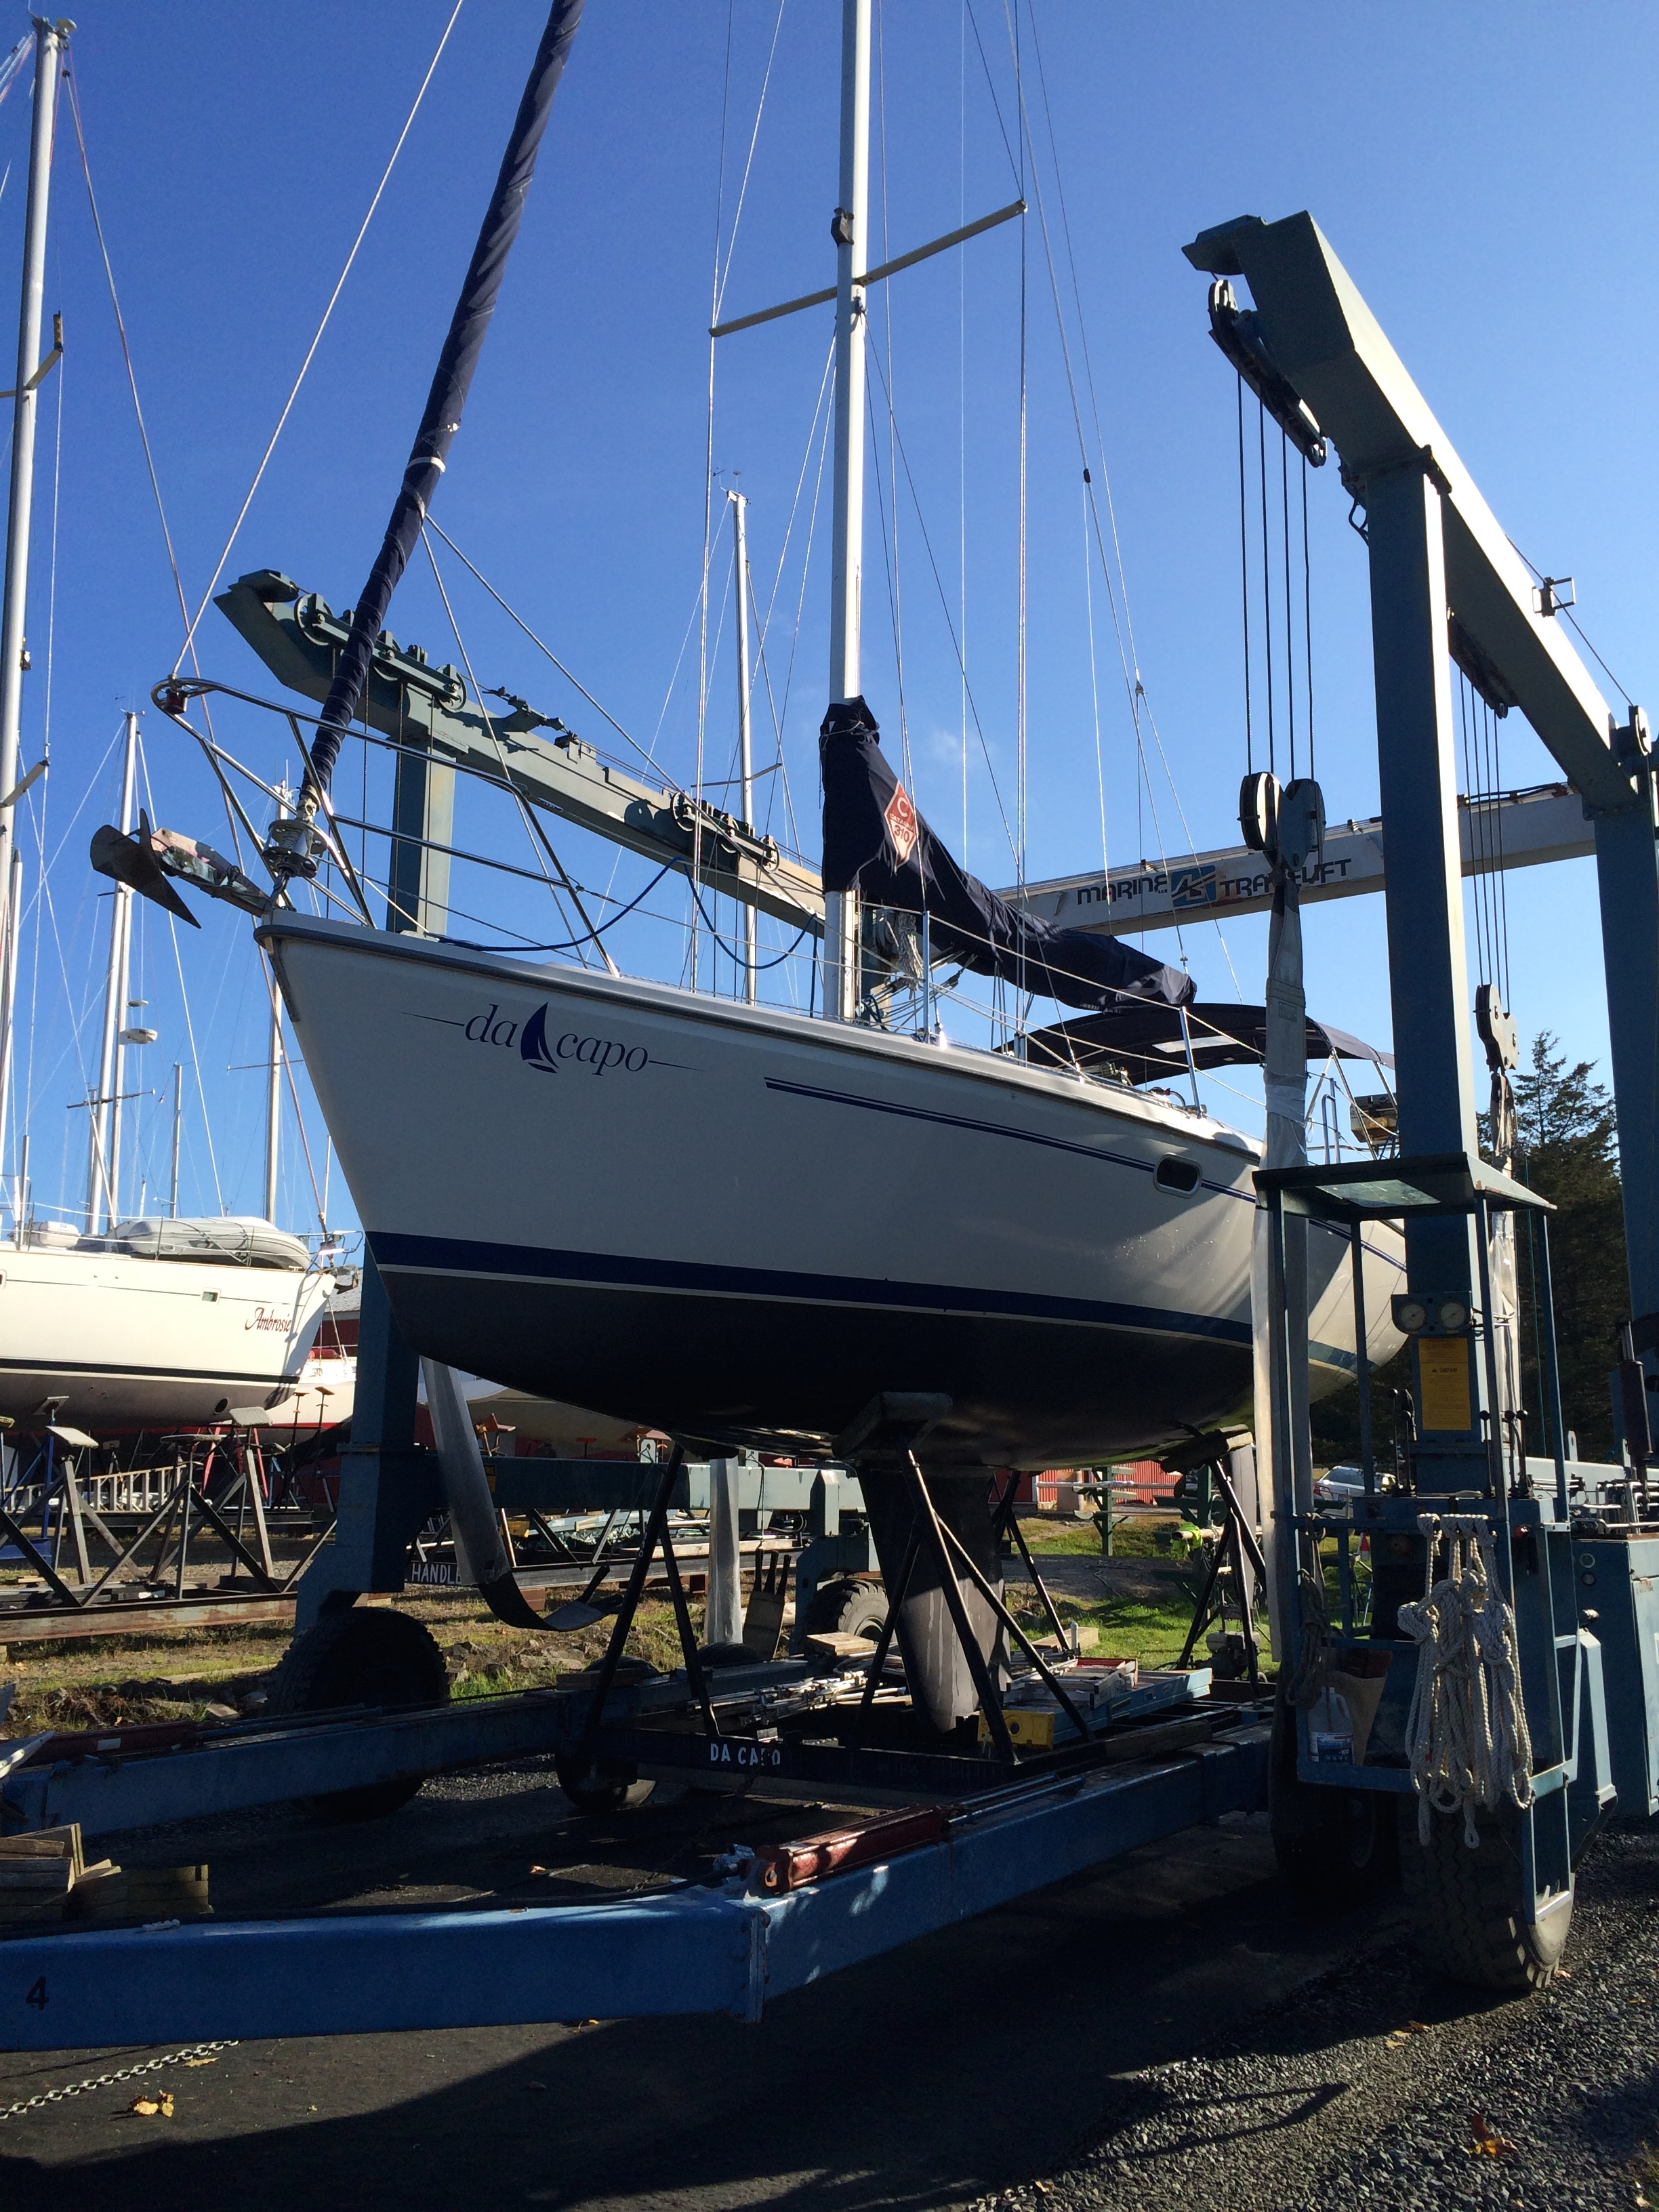 Hauling DaCapo at Willsboro Bay Marina on October 3, 2014